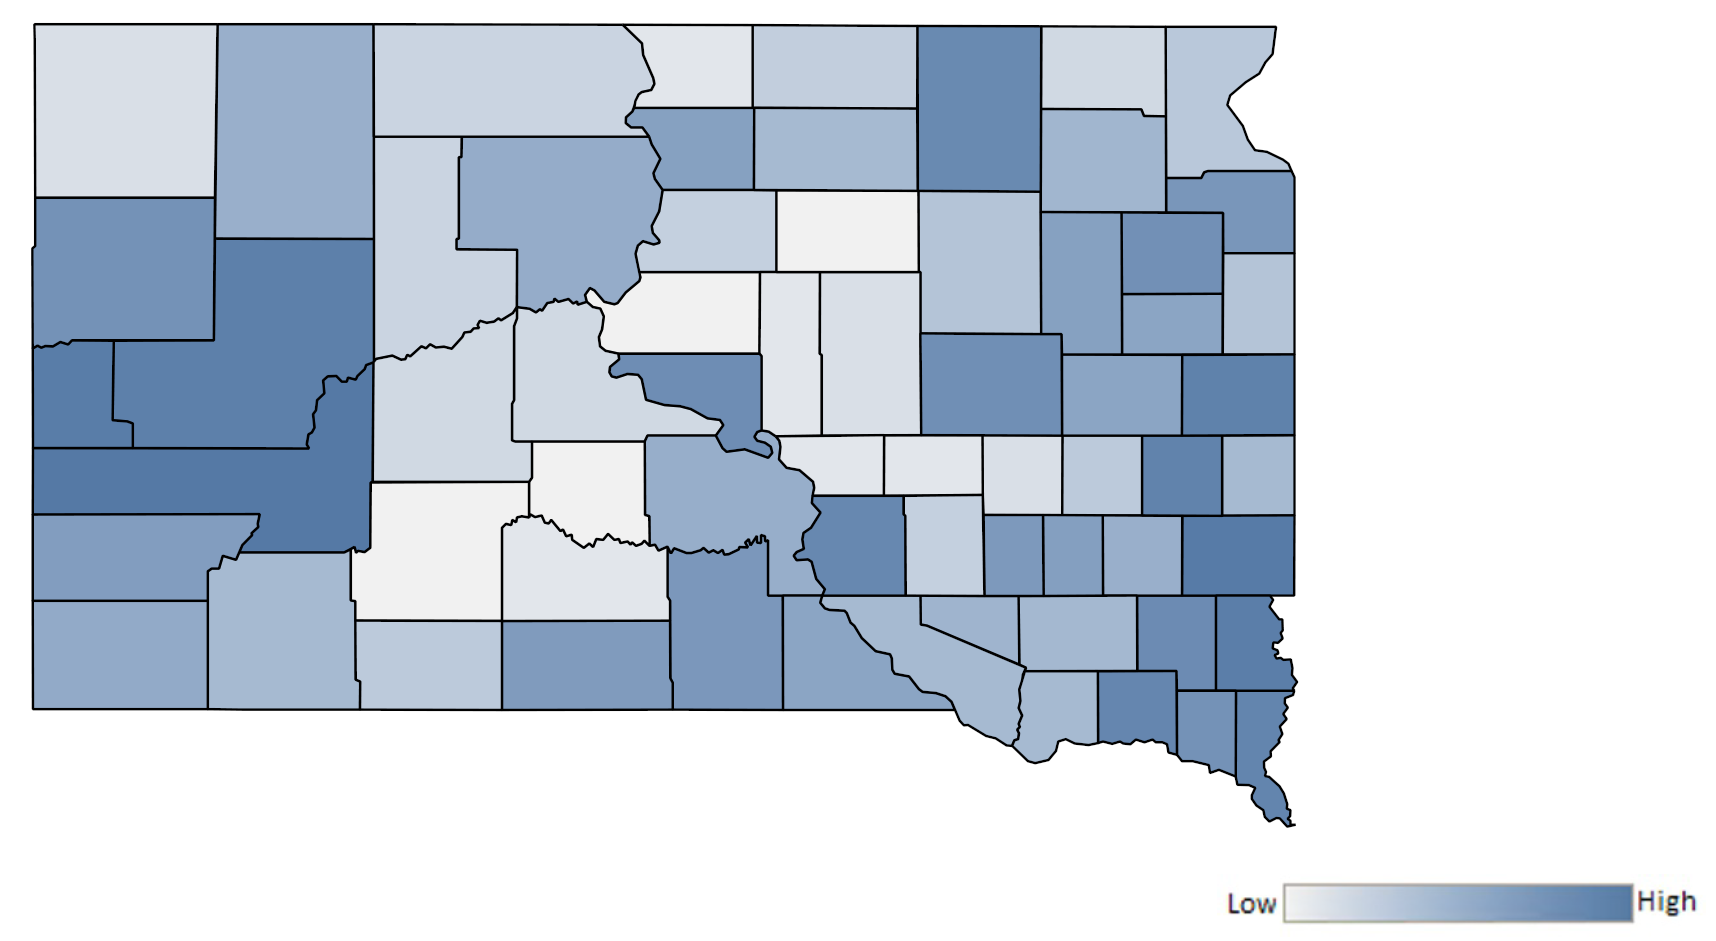 Map of South Dakota counties indicating relative number of complaints from low to high. See attached CSV file for complaint data by jurisdiction.